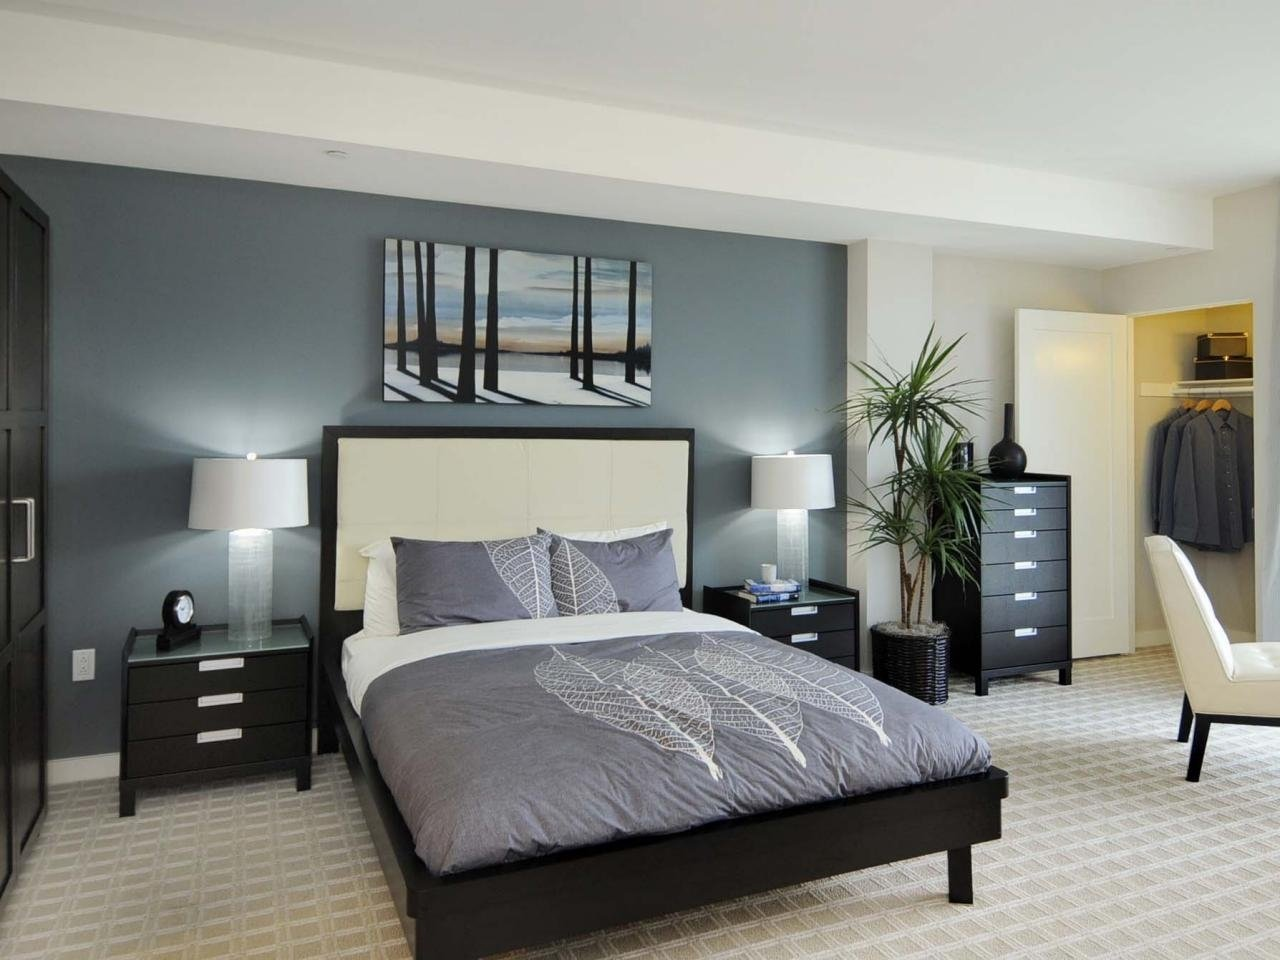 10 Perfect Grey And Blue Bedroom Ideas